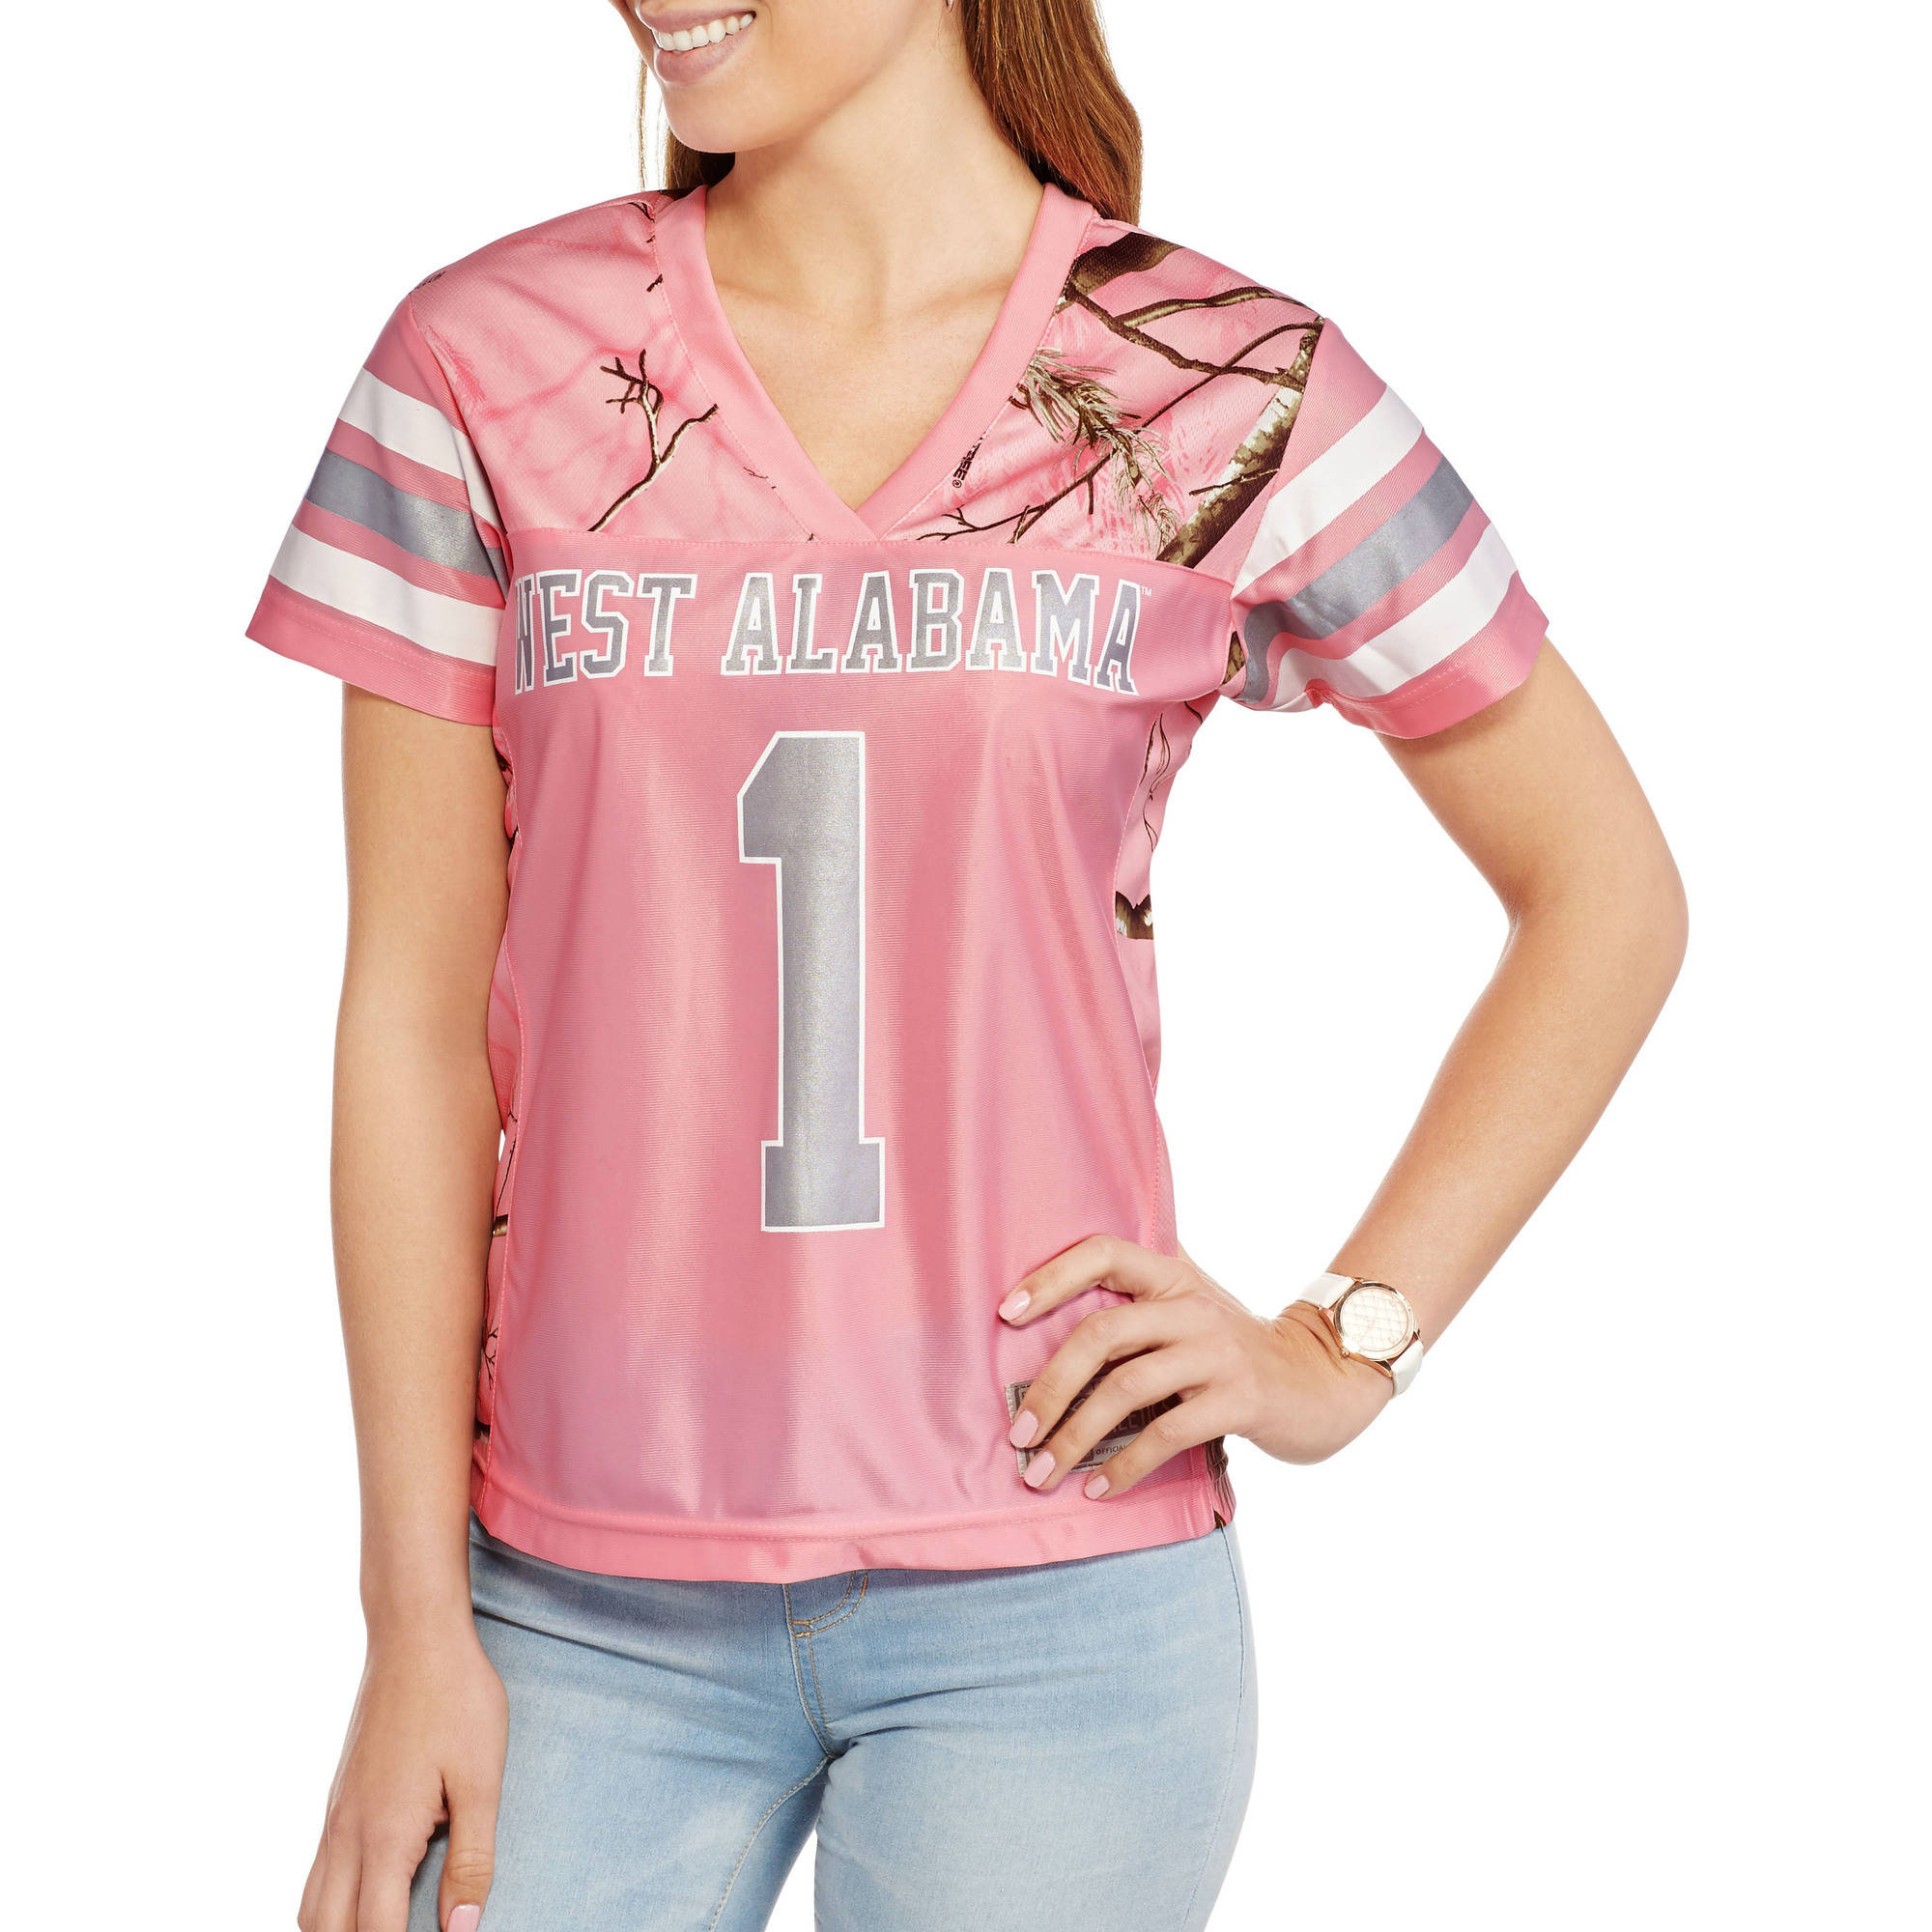 NCAA West Alabama Ladies Pink Game Day Jersey